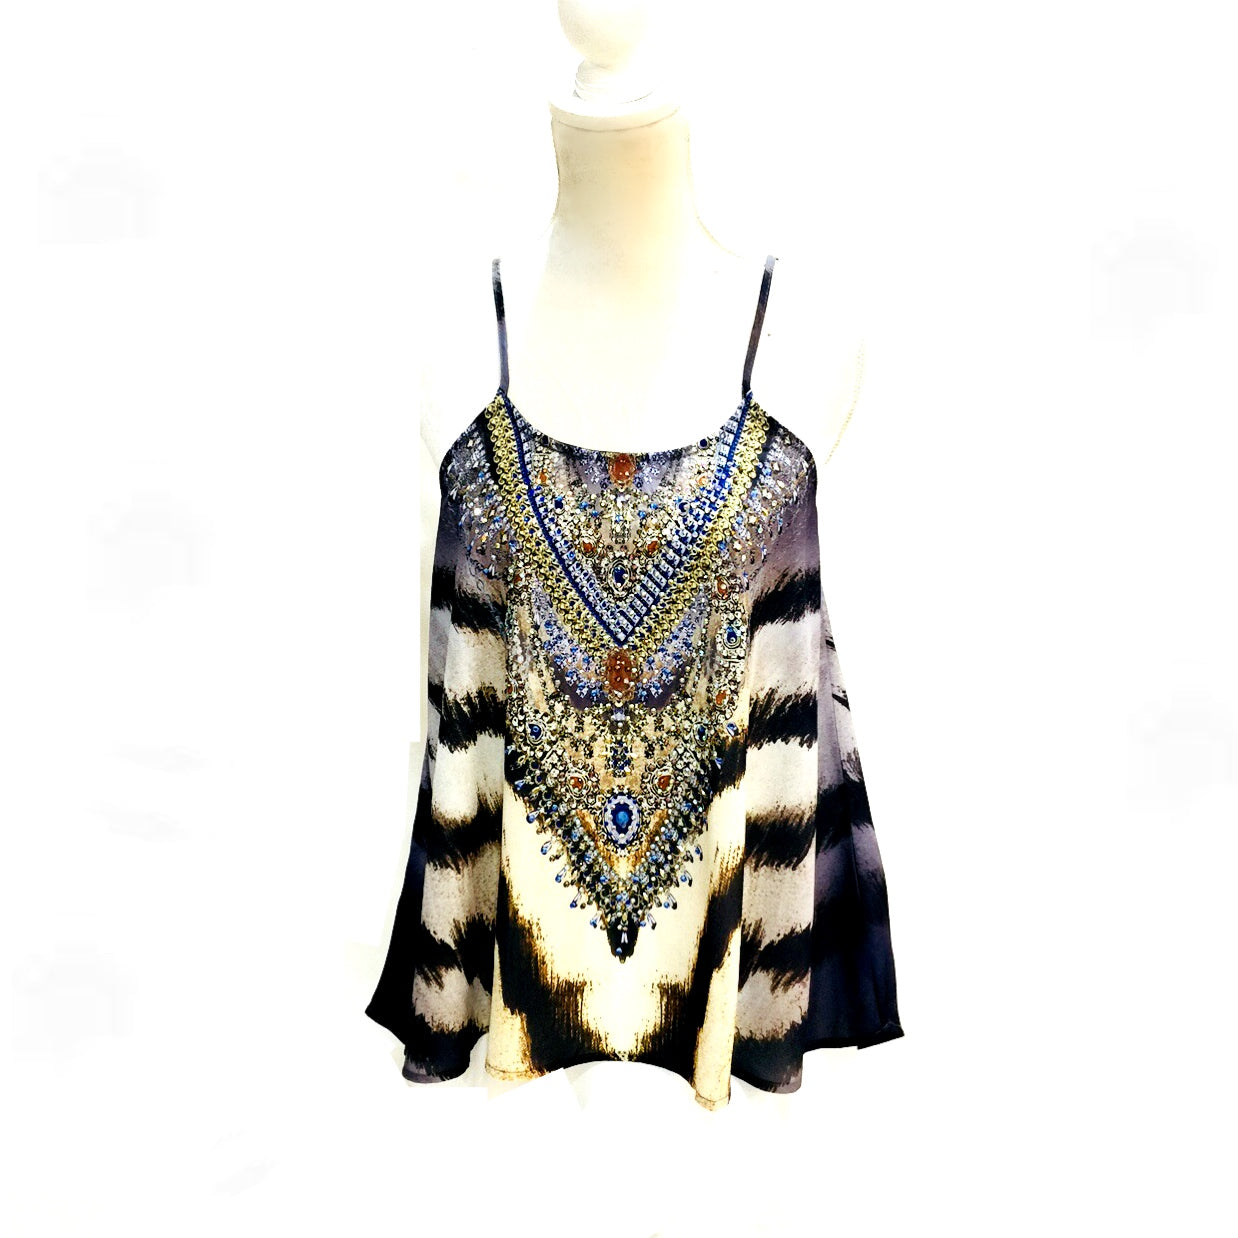 Mediterranean Gem Shoestring Strap Top Roar